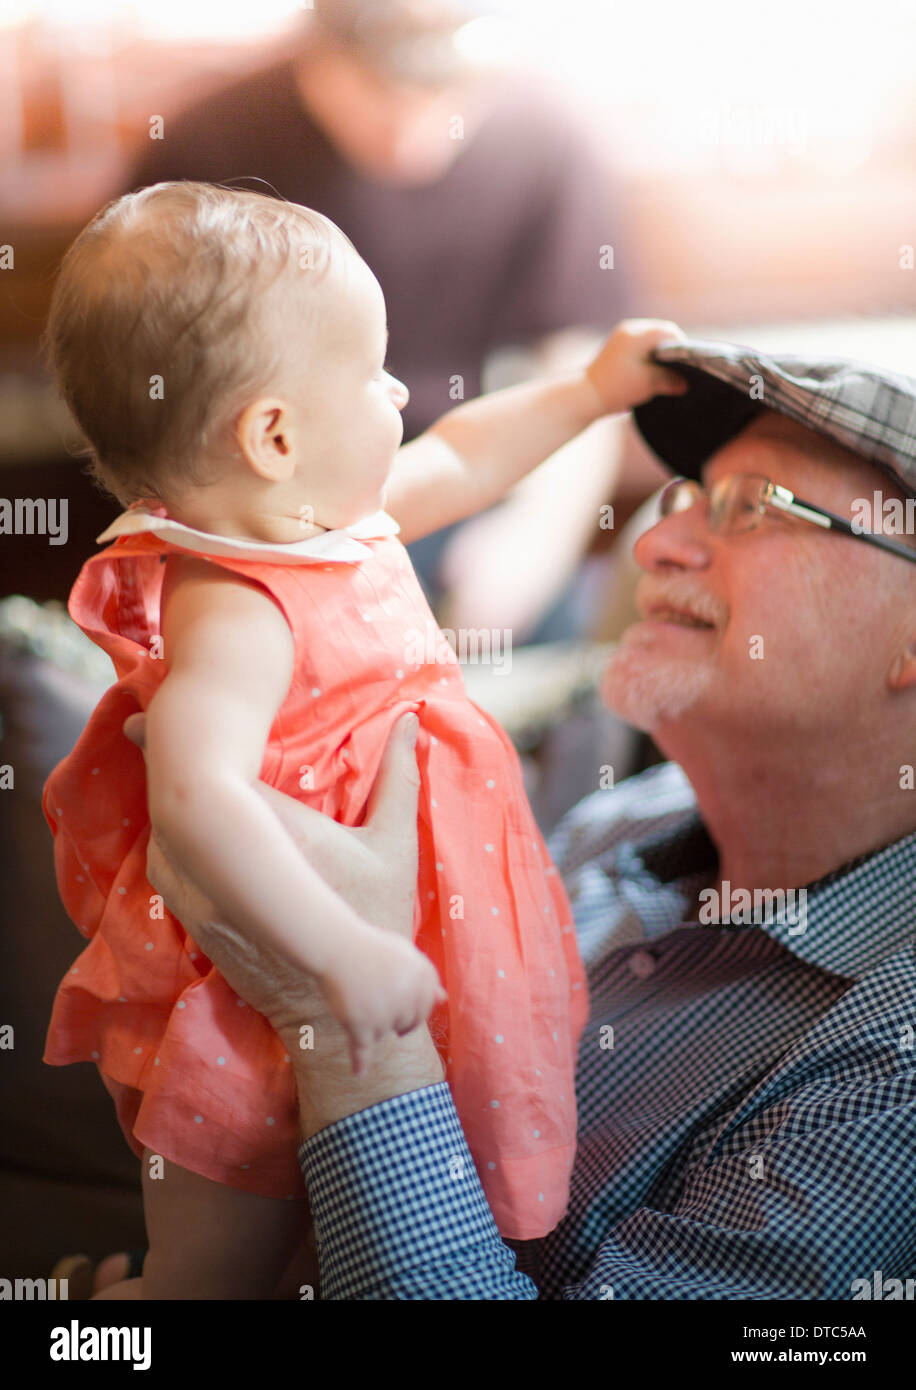 Grandfather holding granddaughter - Stock Image